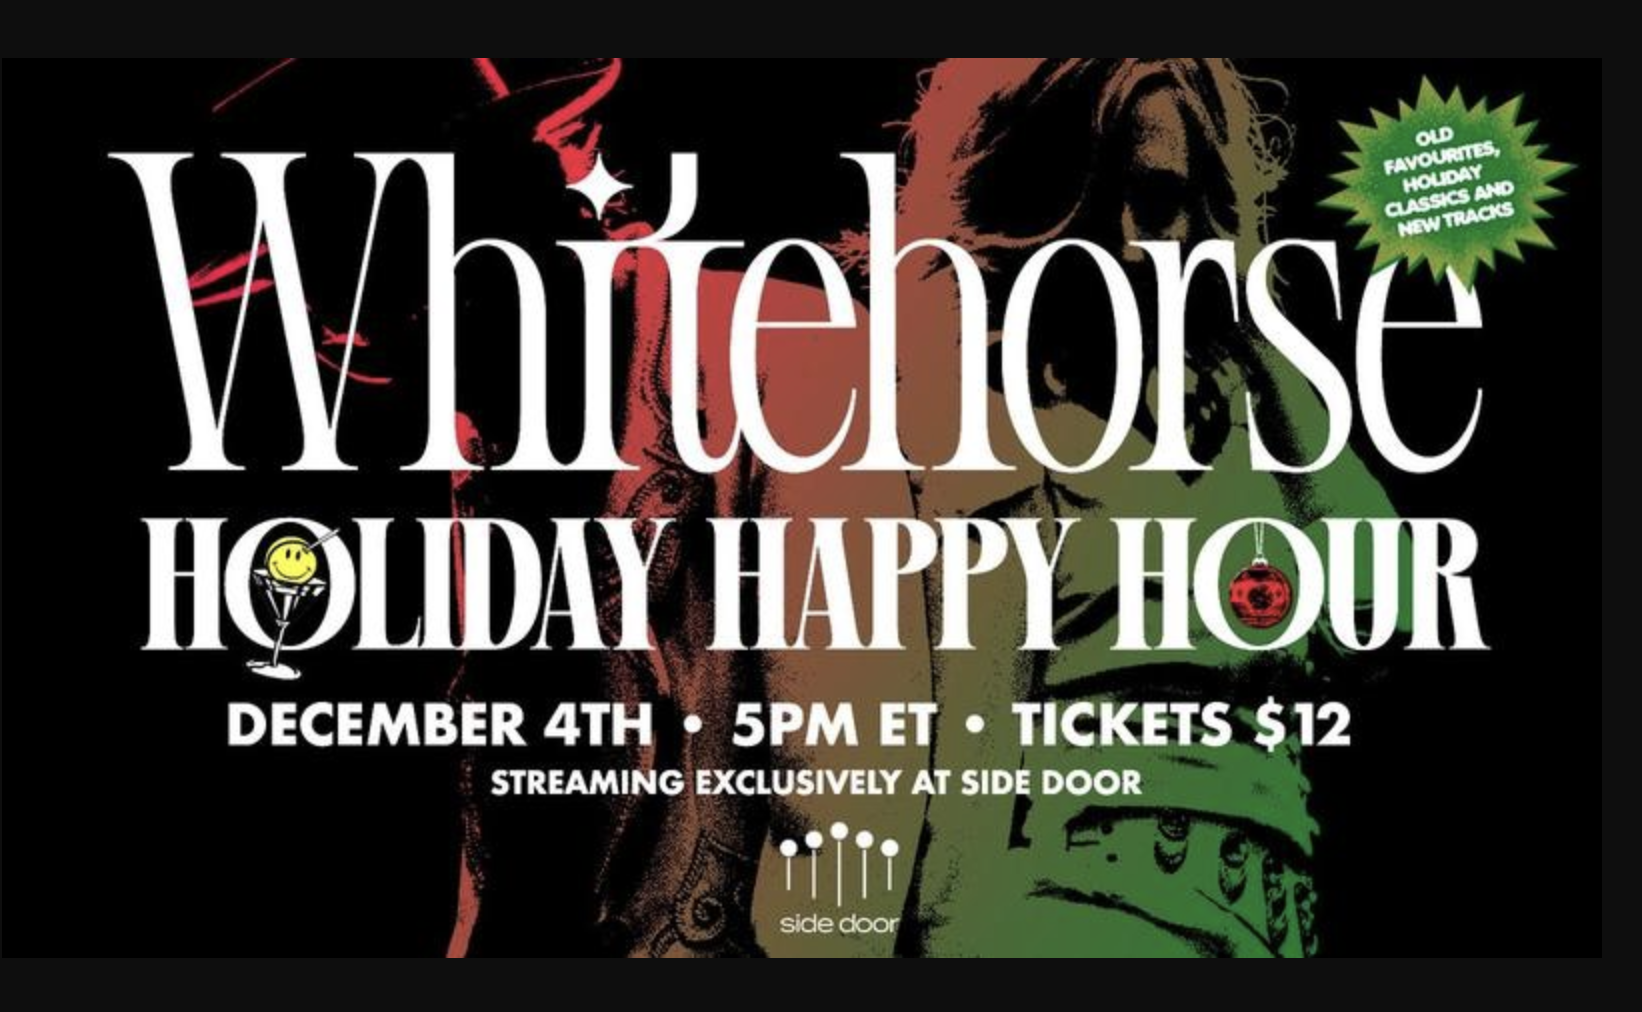 Whtiehorse Holiday Happy Hour